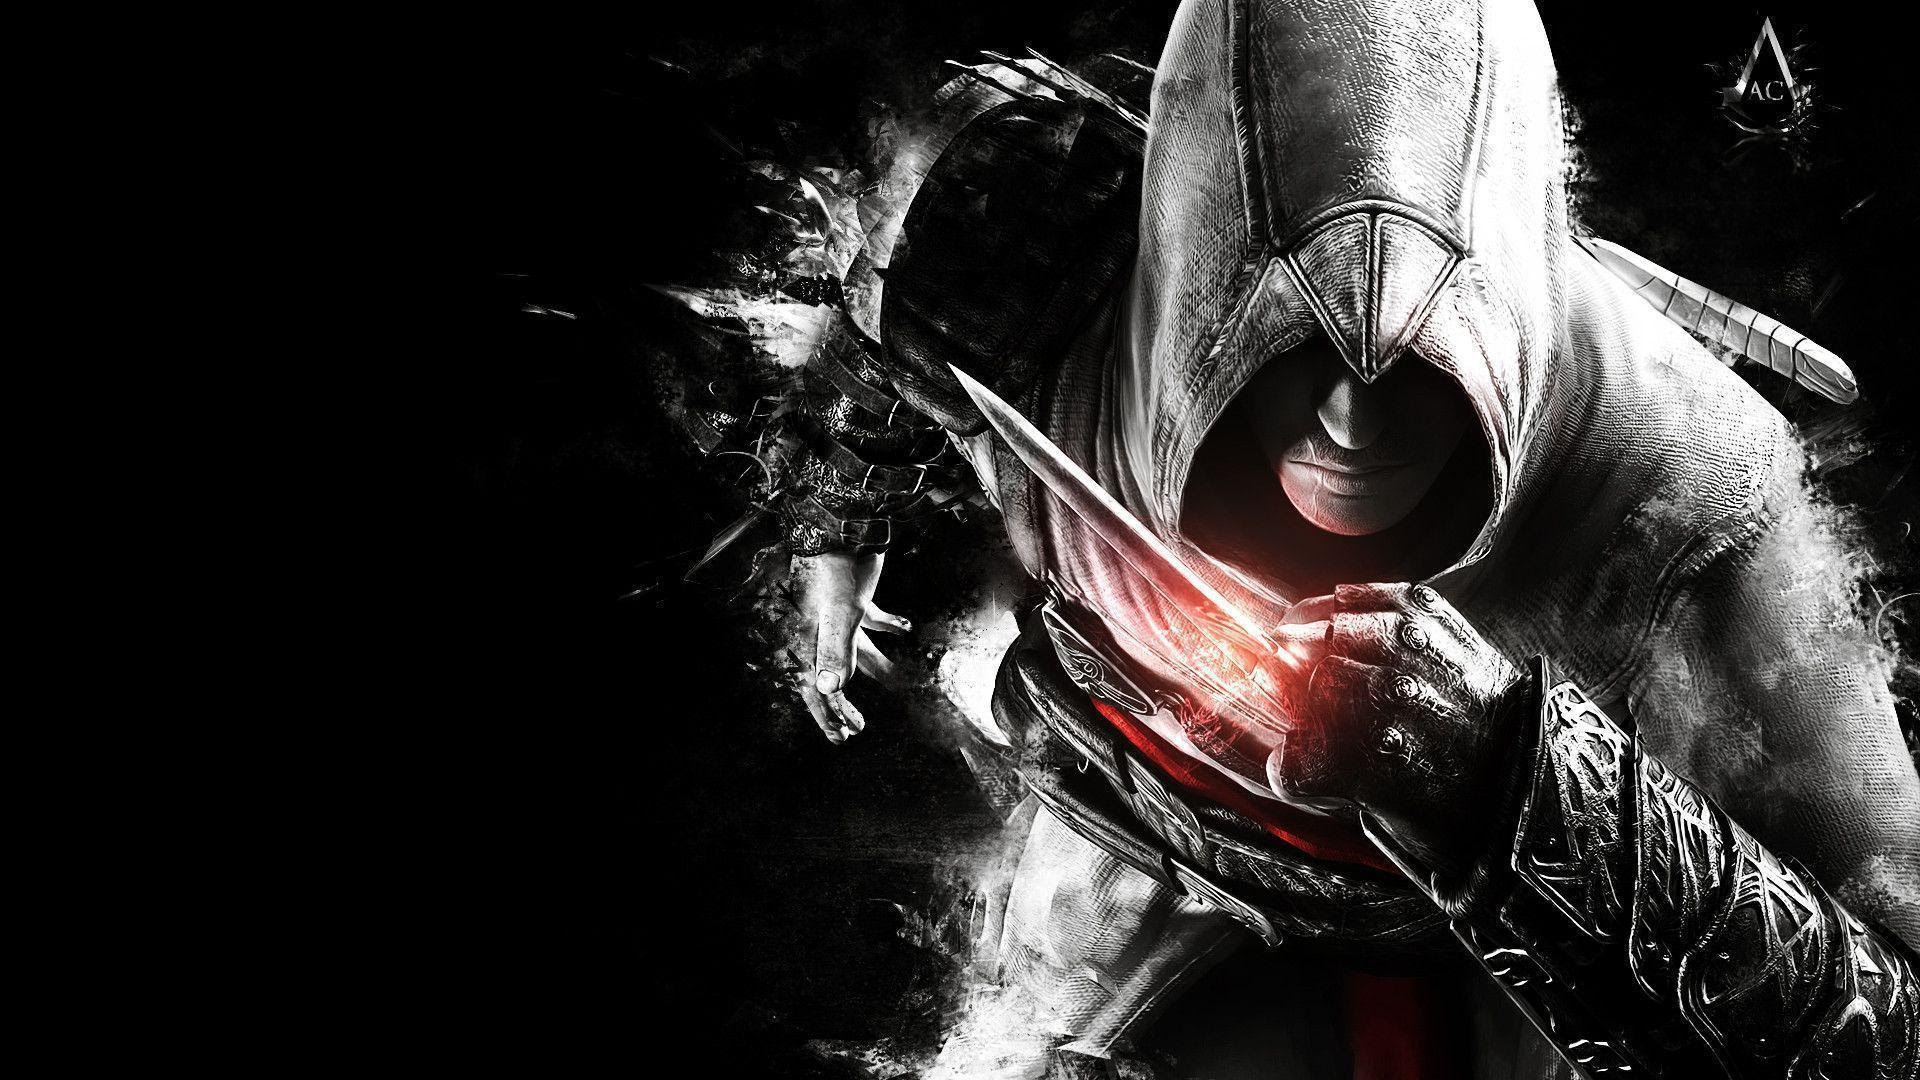 Game Assassins Creed Hd Wallpapers Wallpaper Cave